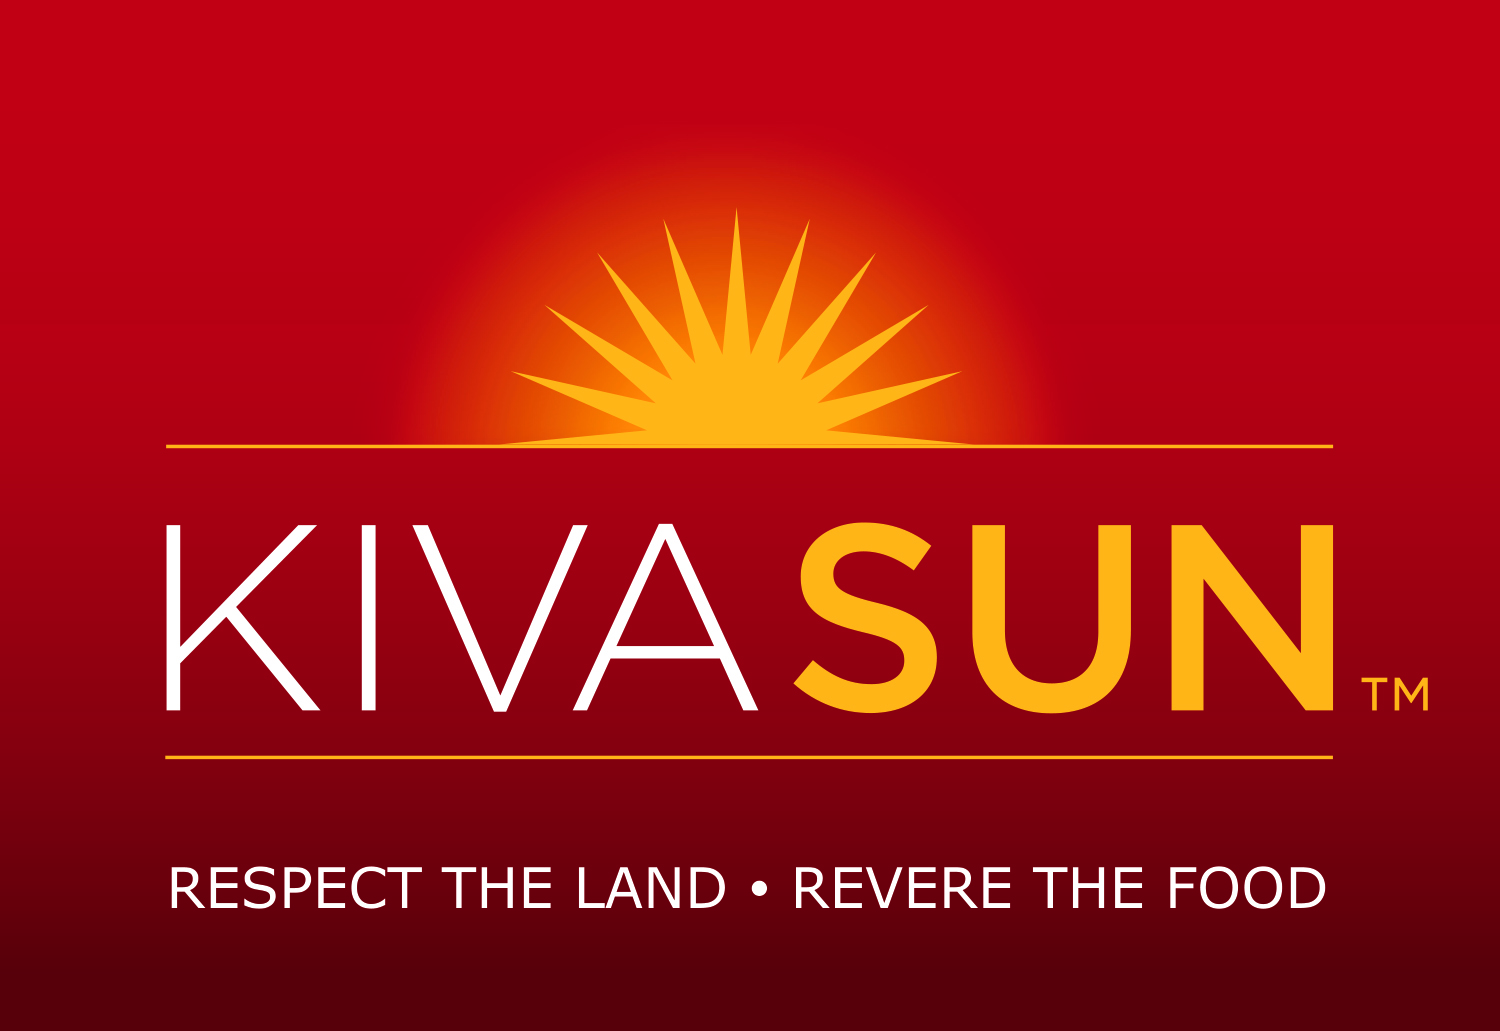 Nb3 Foods, which also operates under the name Kiva Sun Foods, is located in Bend, Oregon. This organization primarily operates in the Food Brokers business / industry within the Wholesale Trade - Nondurable Goods sector. This organization has been operating for approximately 8 years.